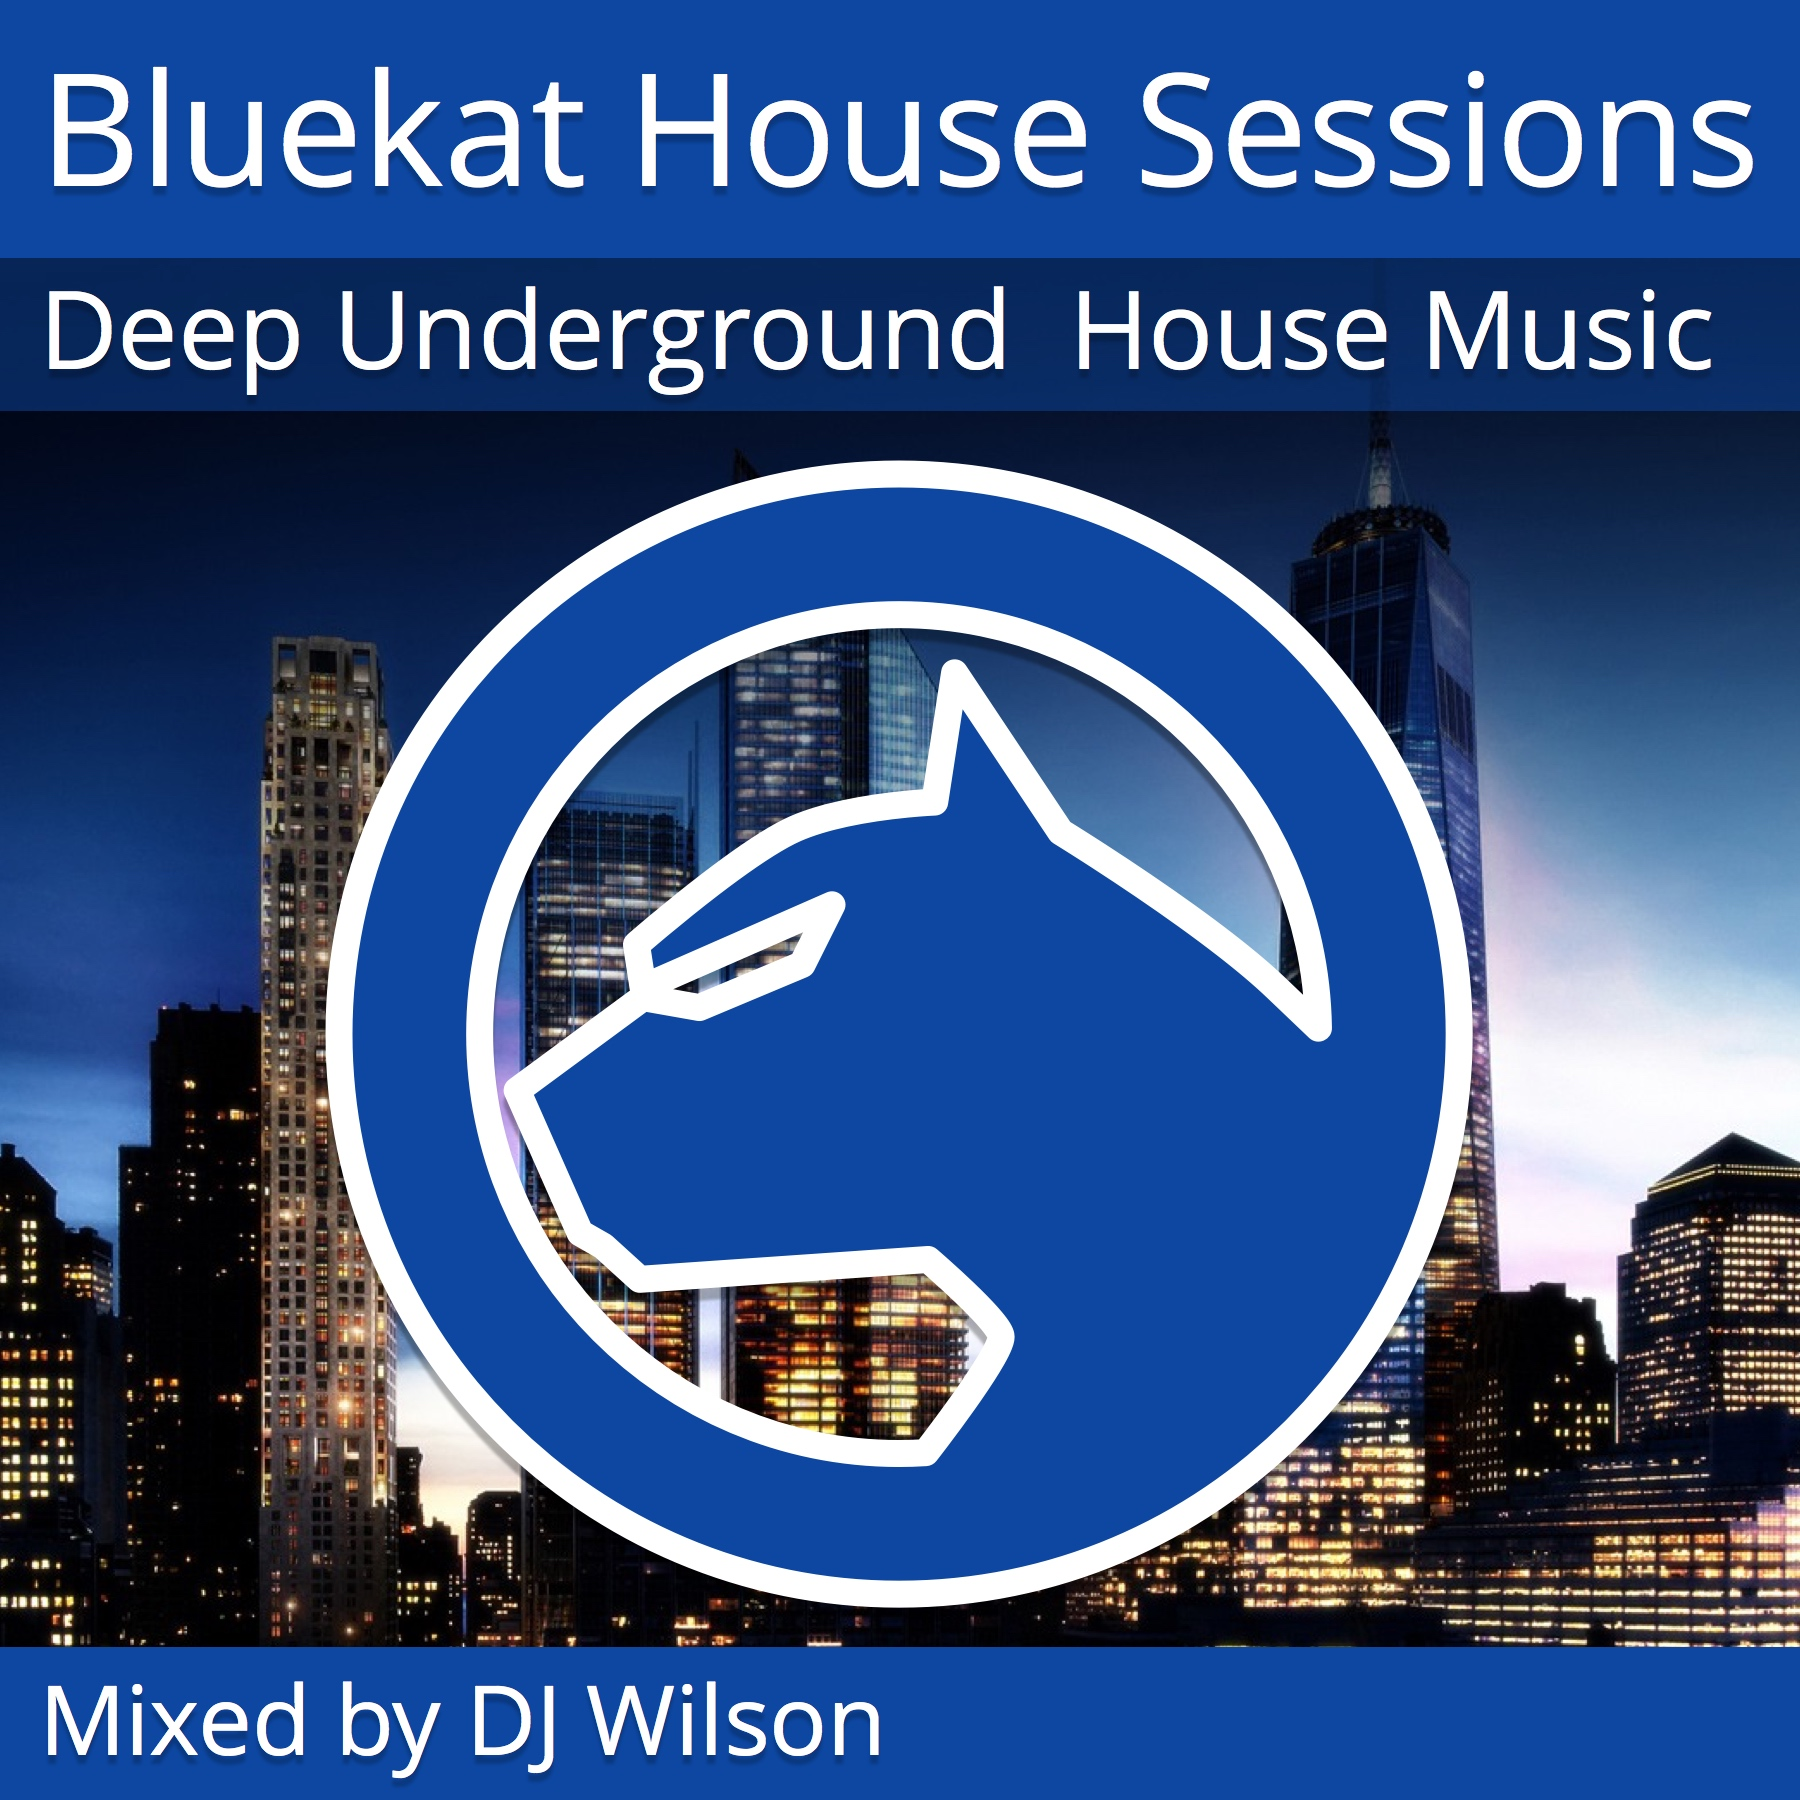 Bluekat House Sessions